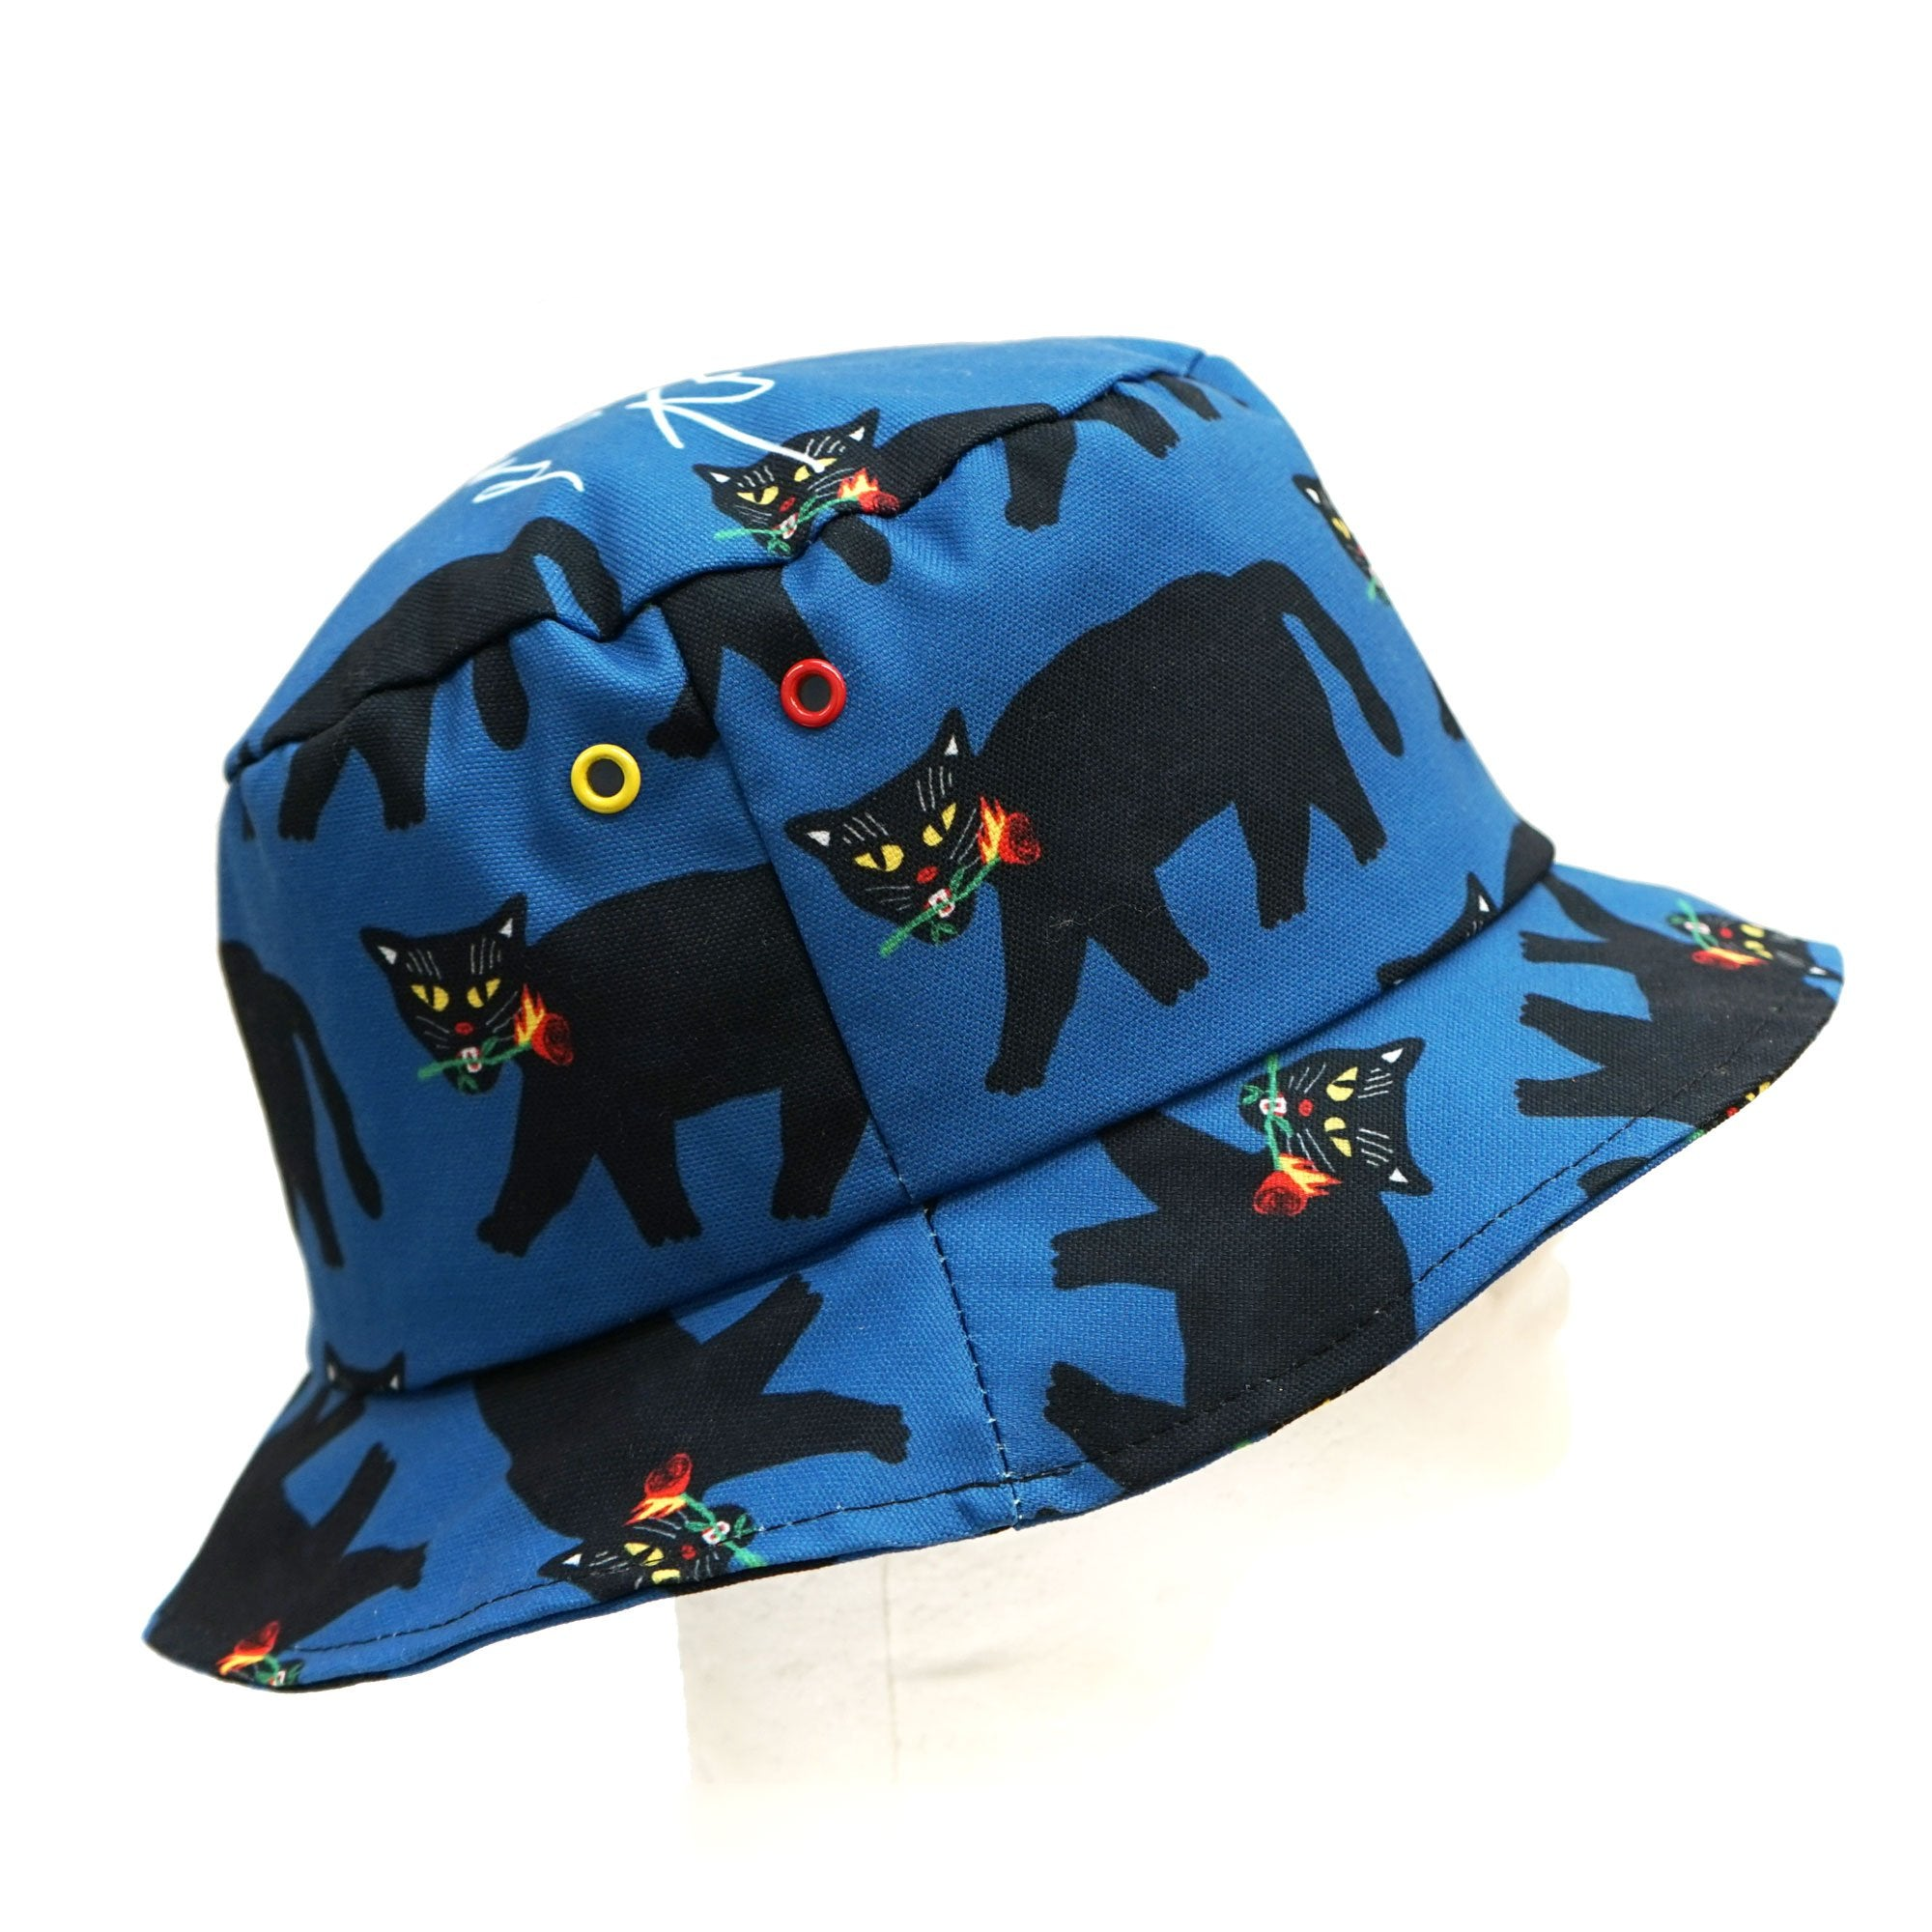 Fire Black Panther Bucket Hat